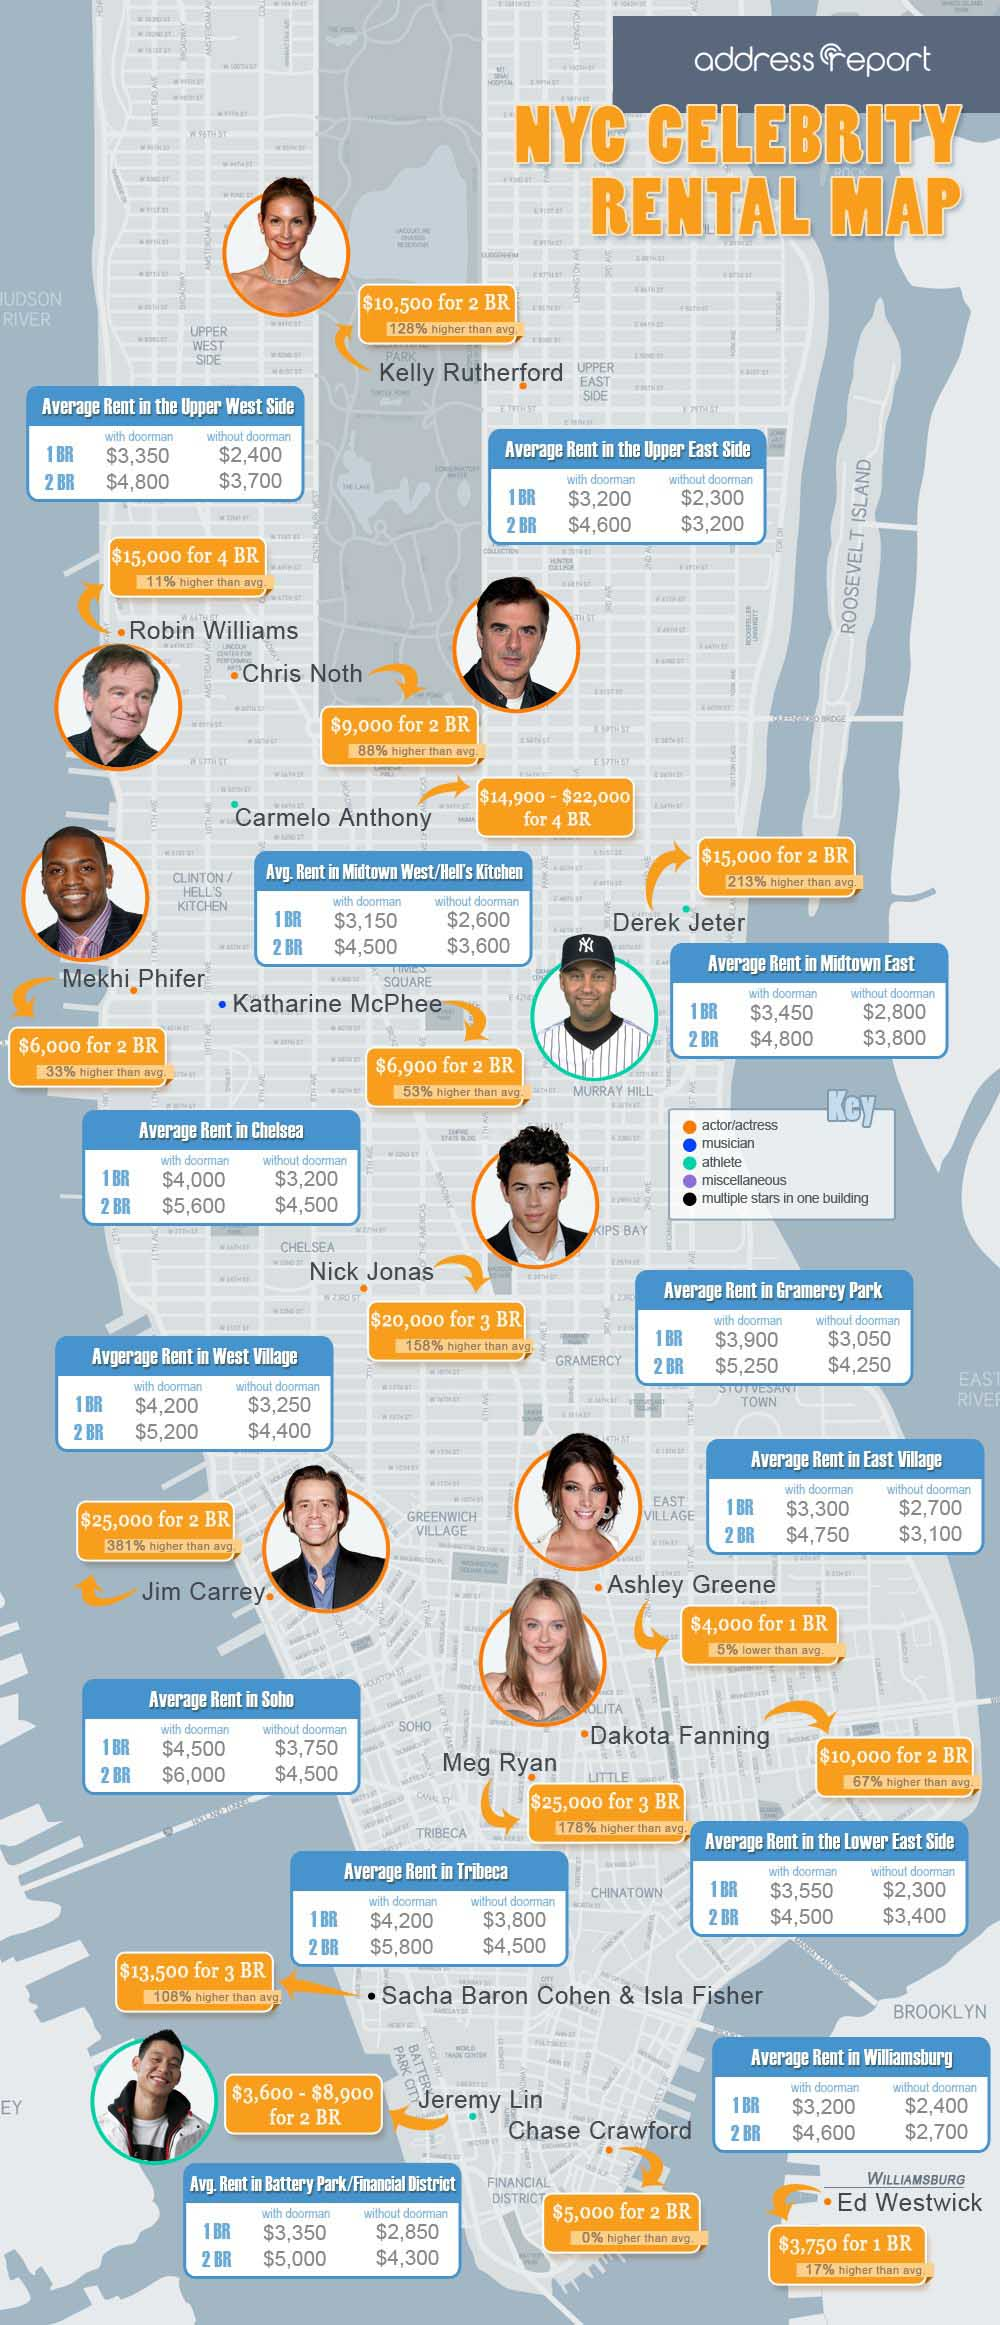 nyc luxury rentals celebrity map what do celebrities pay to rent in